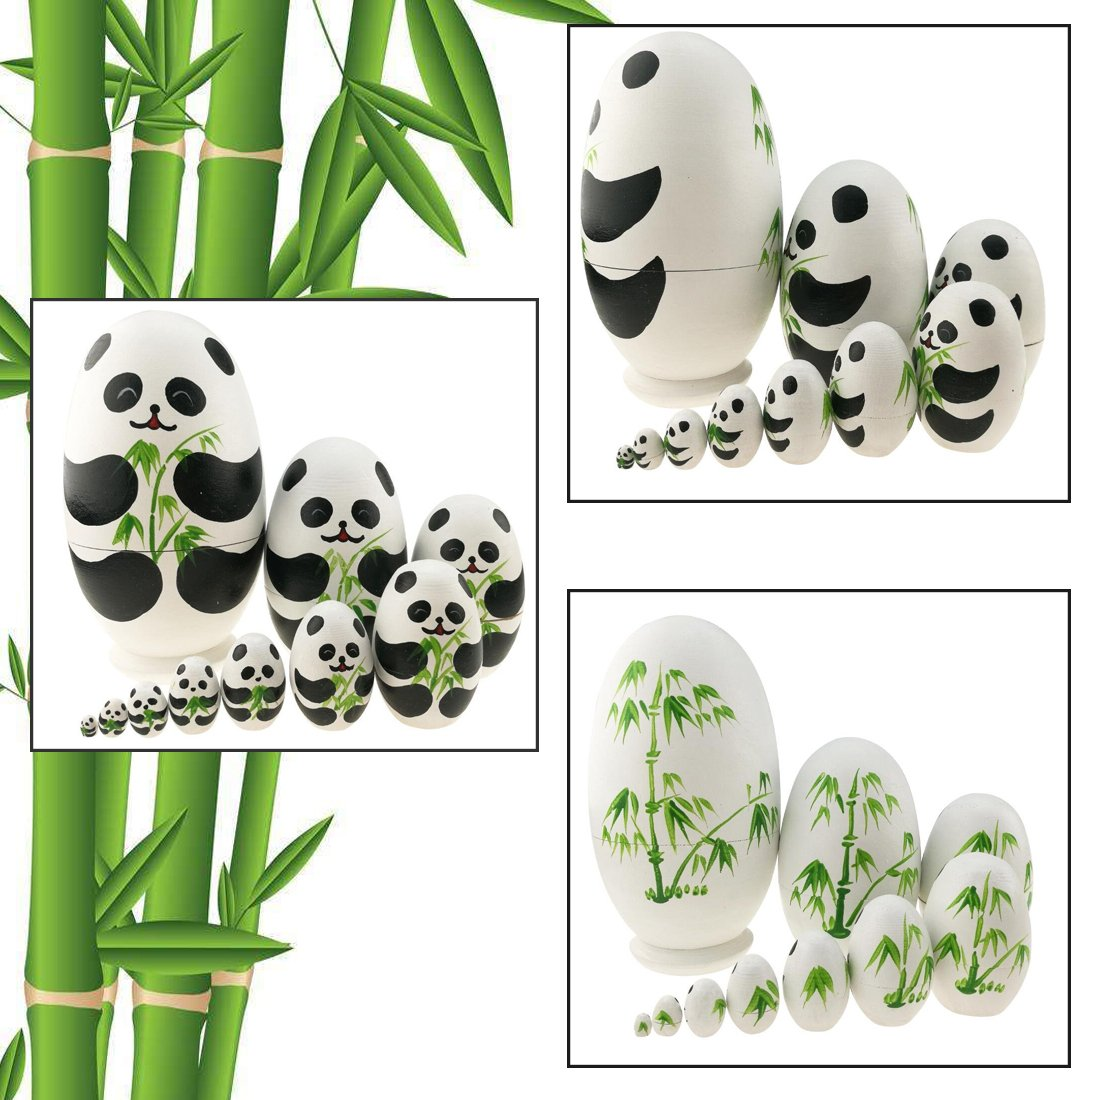 Apol Cute Panda With Bamboo Egg Shape Handmade Wooden Russian Nesting Dolls Matryoshka Doll Set 10 Pieces in a Exquisite Gift Box With Bow For Home Decoration Kids Toy Christmas Birthday Easter Gift by Apol (Image #3)